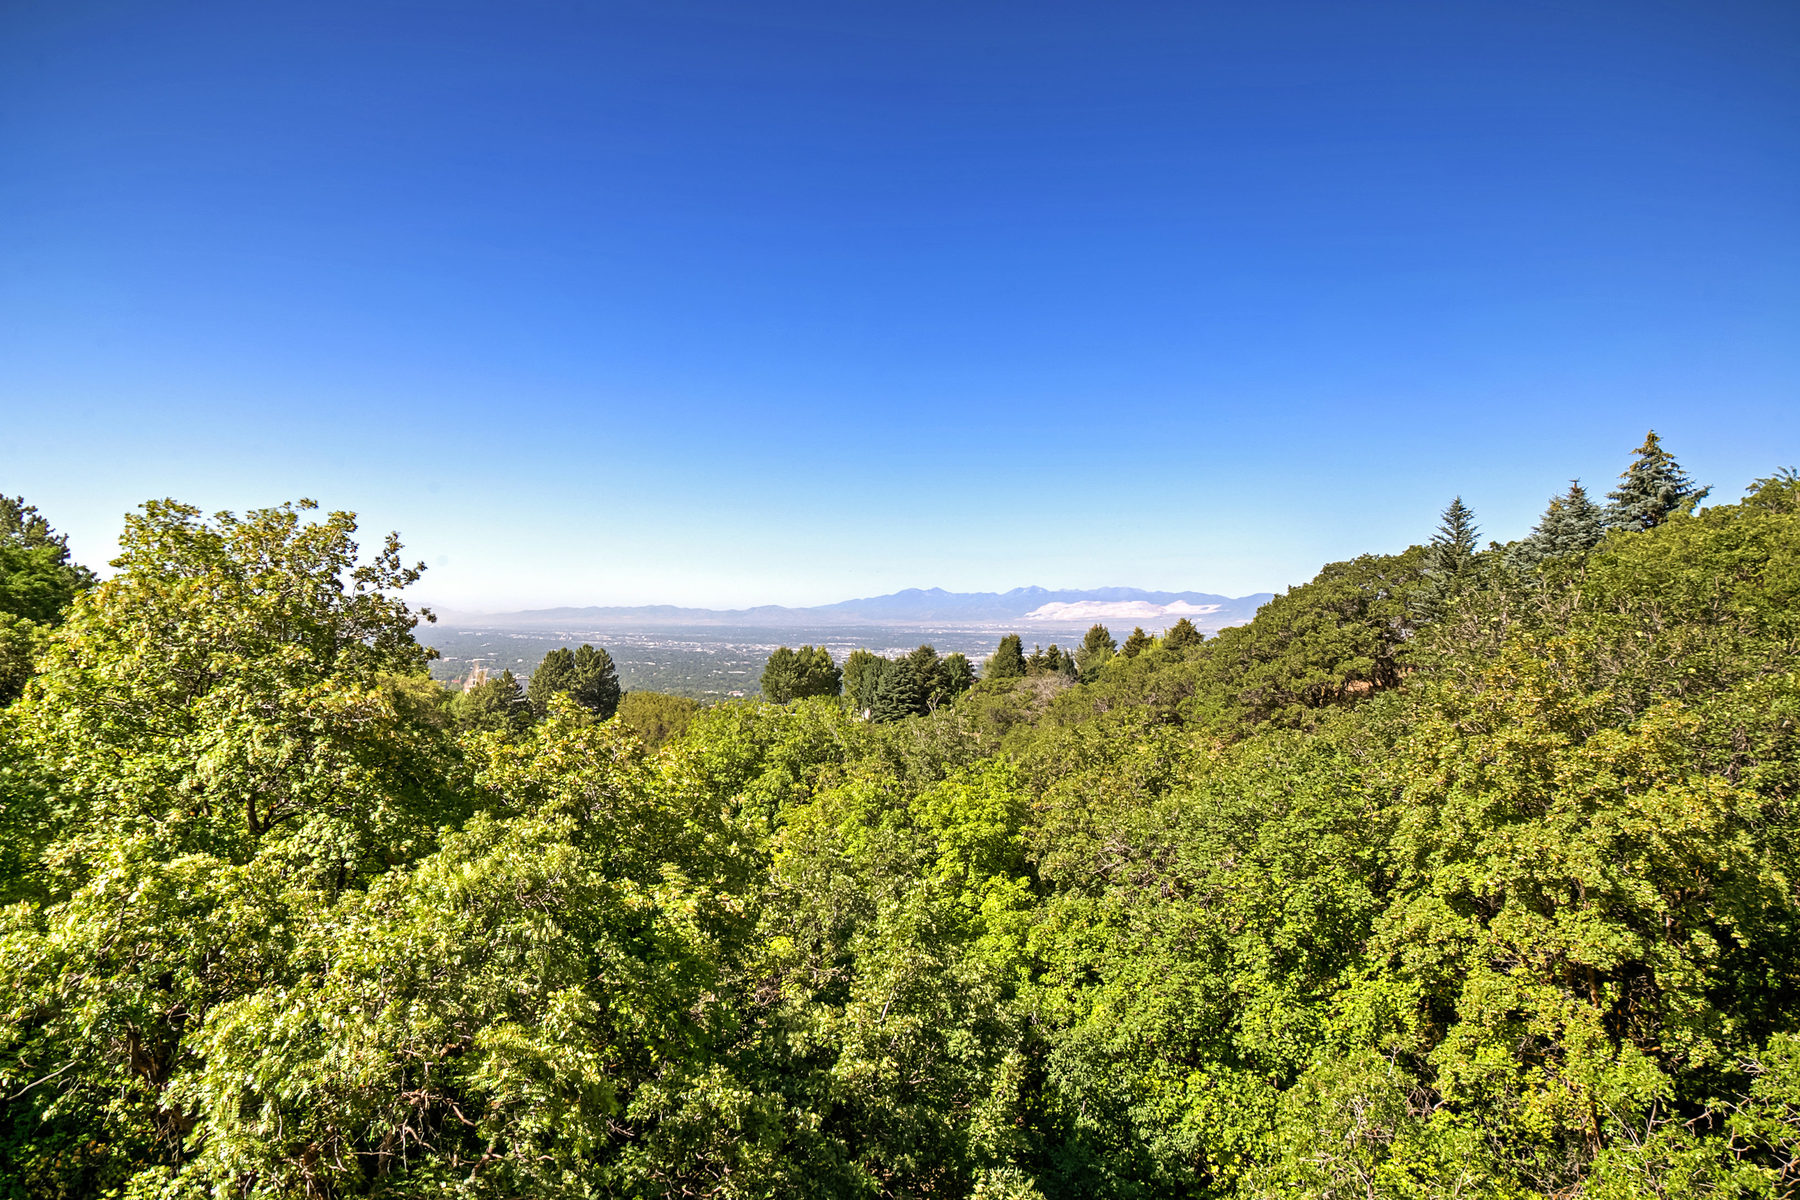 Land for Sale at Fabulous Building Lot with Amazing Views 1484 E Tomahawk Dr Salt Lake City, Utah, 84103 United States